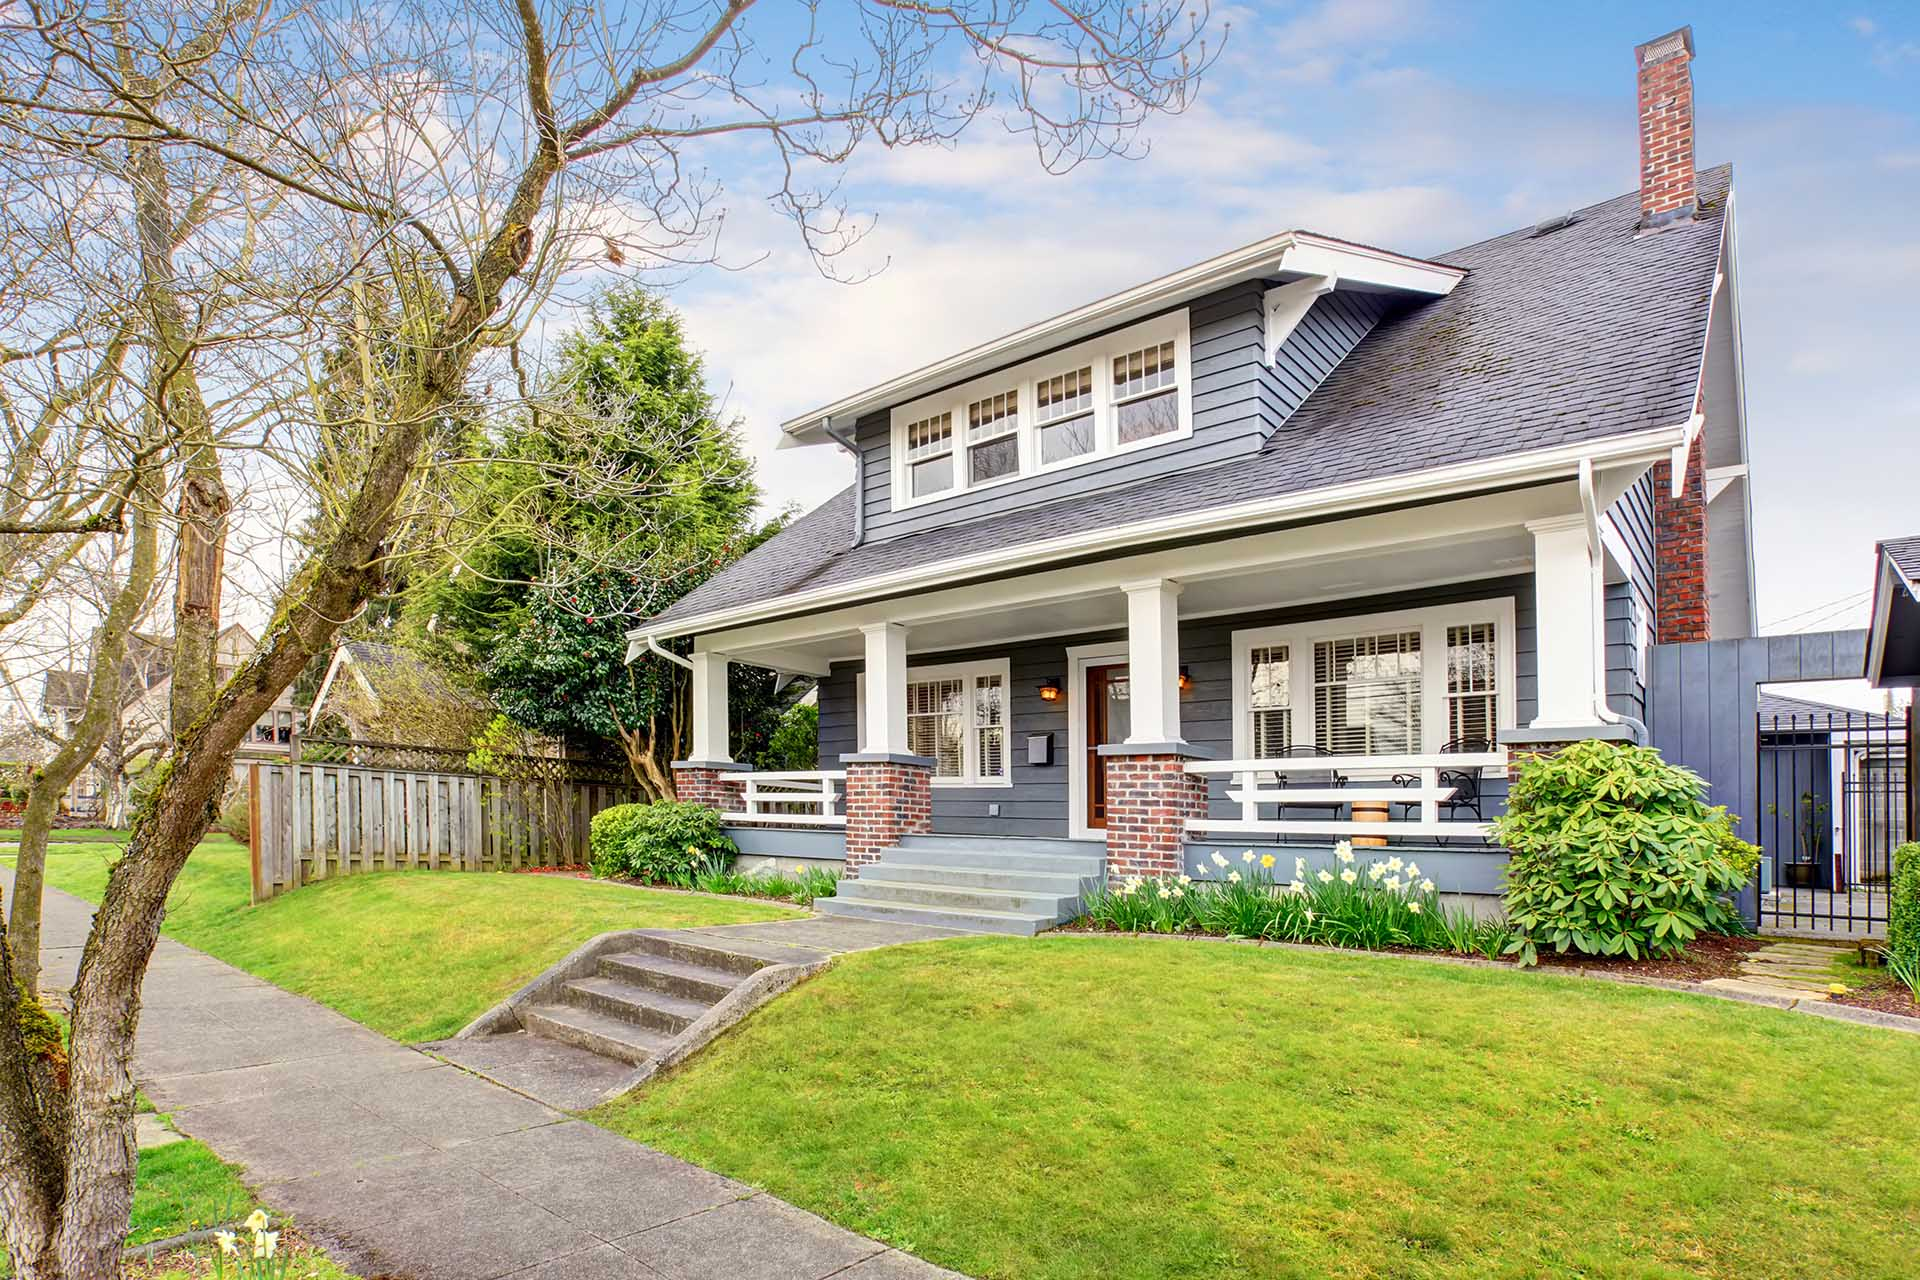 The ABCs of Effective How To Improve Curb Appeal